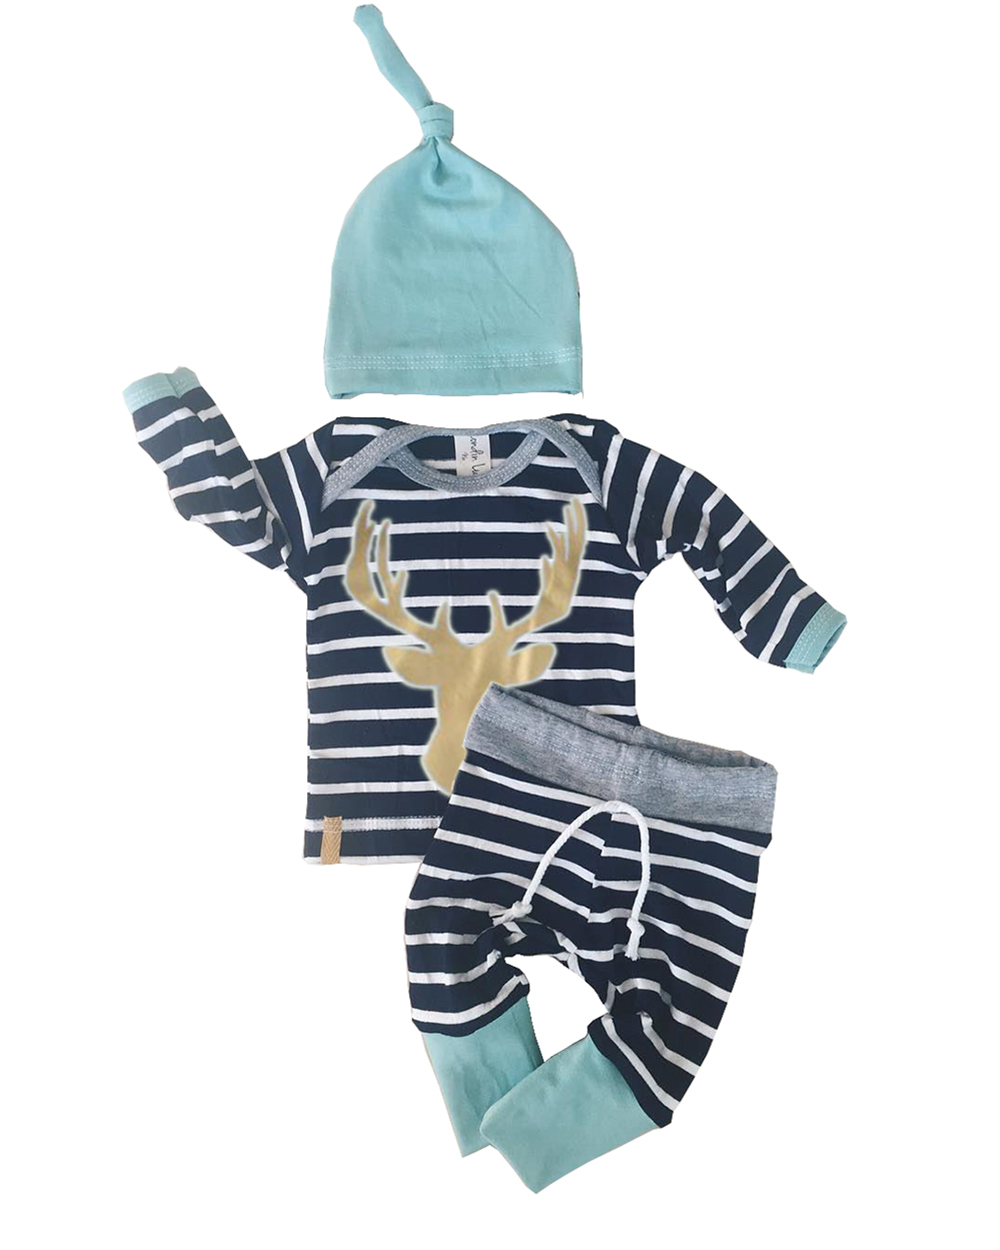 2017 New Newborn Bebes Baby Boy Girl Clothes Long Sleeve Striped Tops Pants Hat 3PCS Outfits Set Baby Clothing For Newborns baby fox print clothes set newborn baby boy girl long sleeve t shirt tops pants 2017 new hot fall bebes outfit kids clothing set